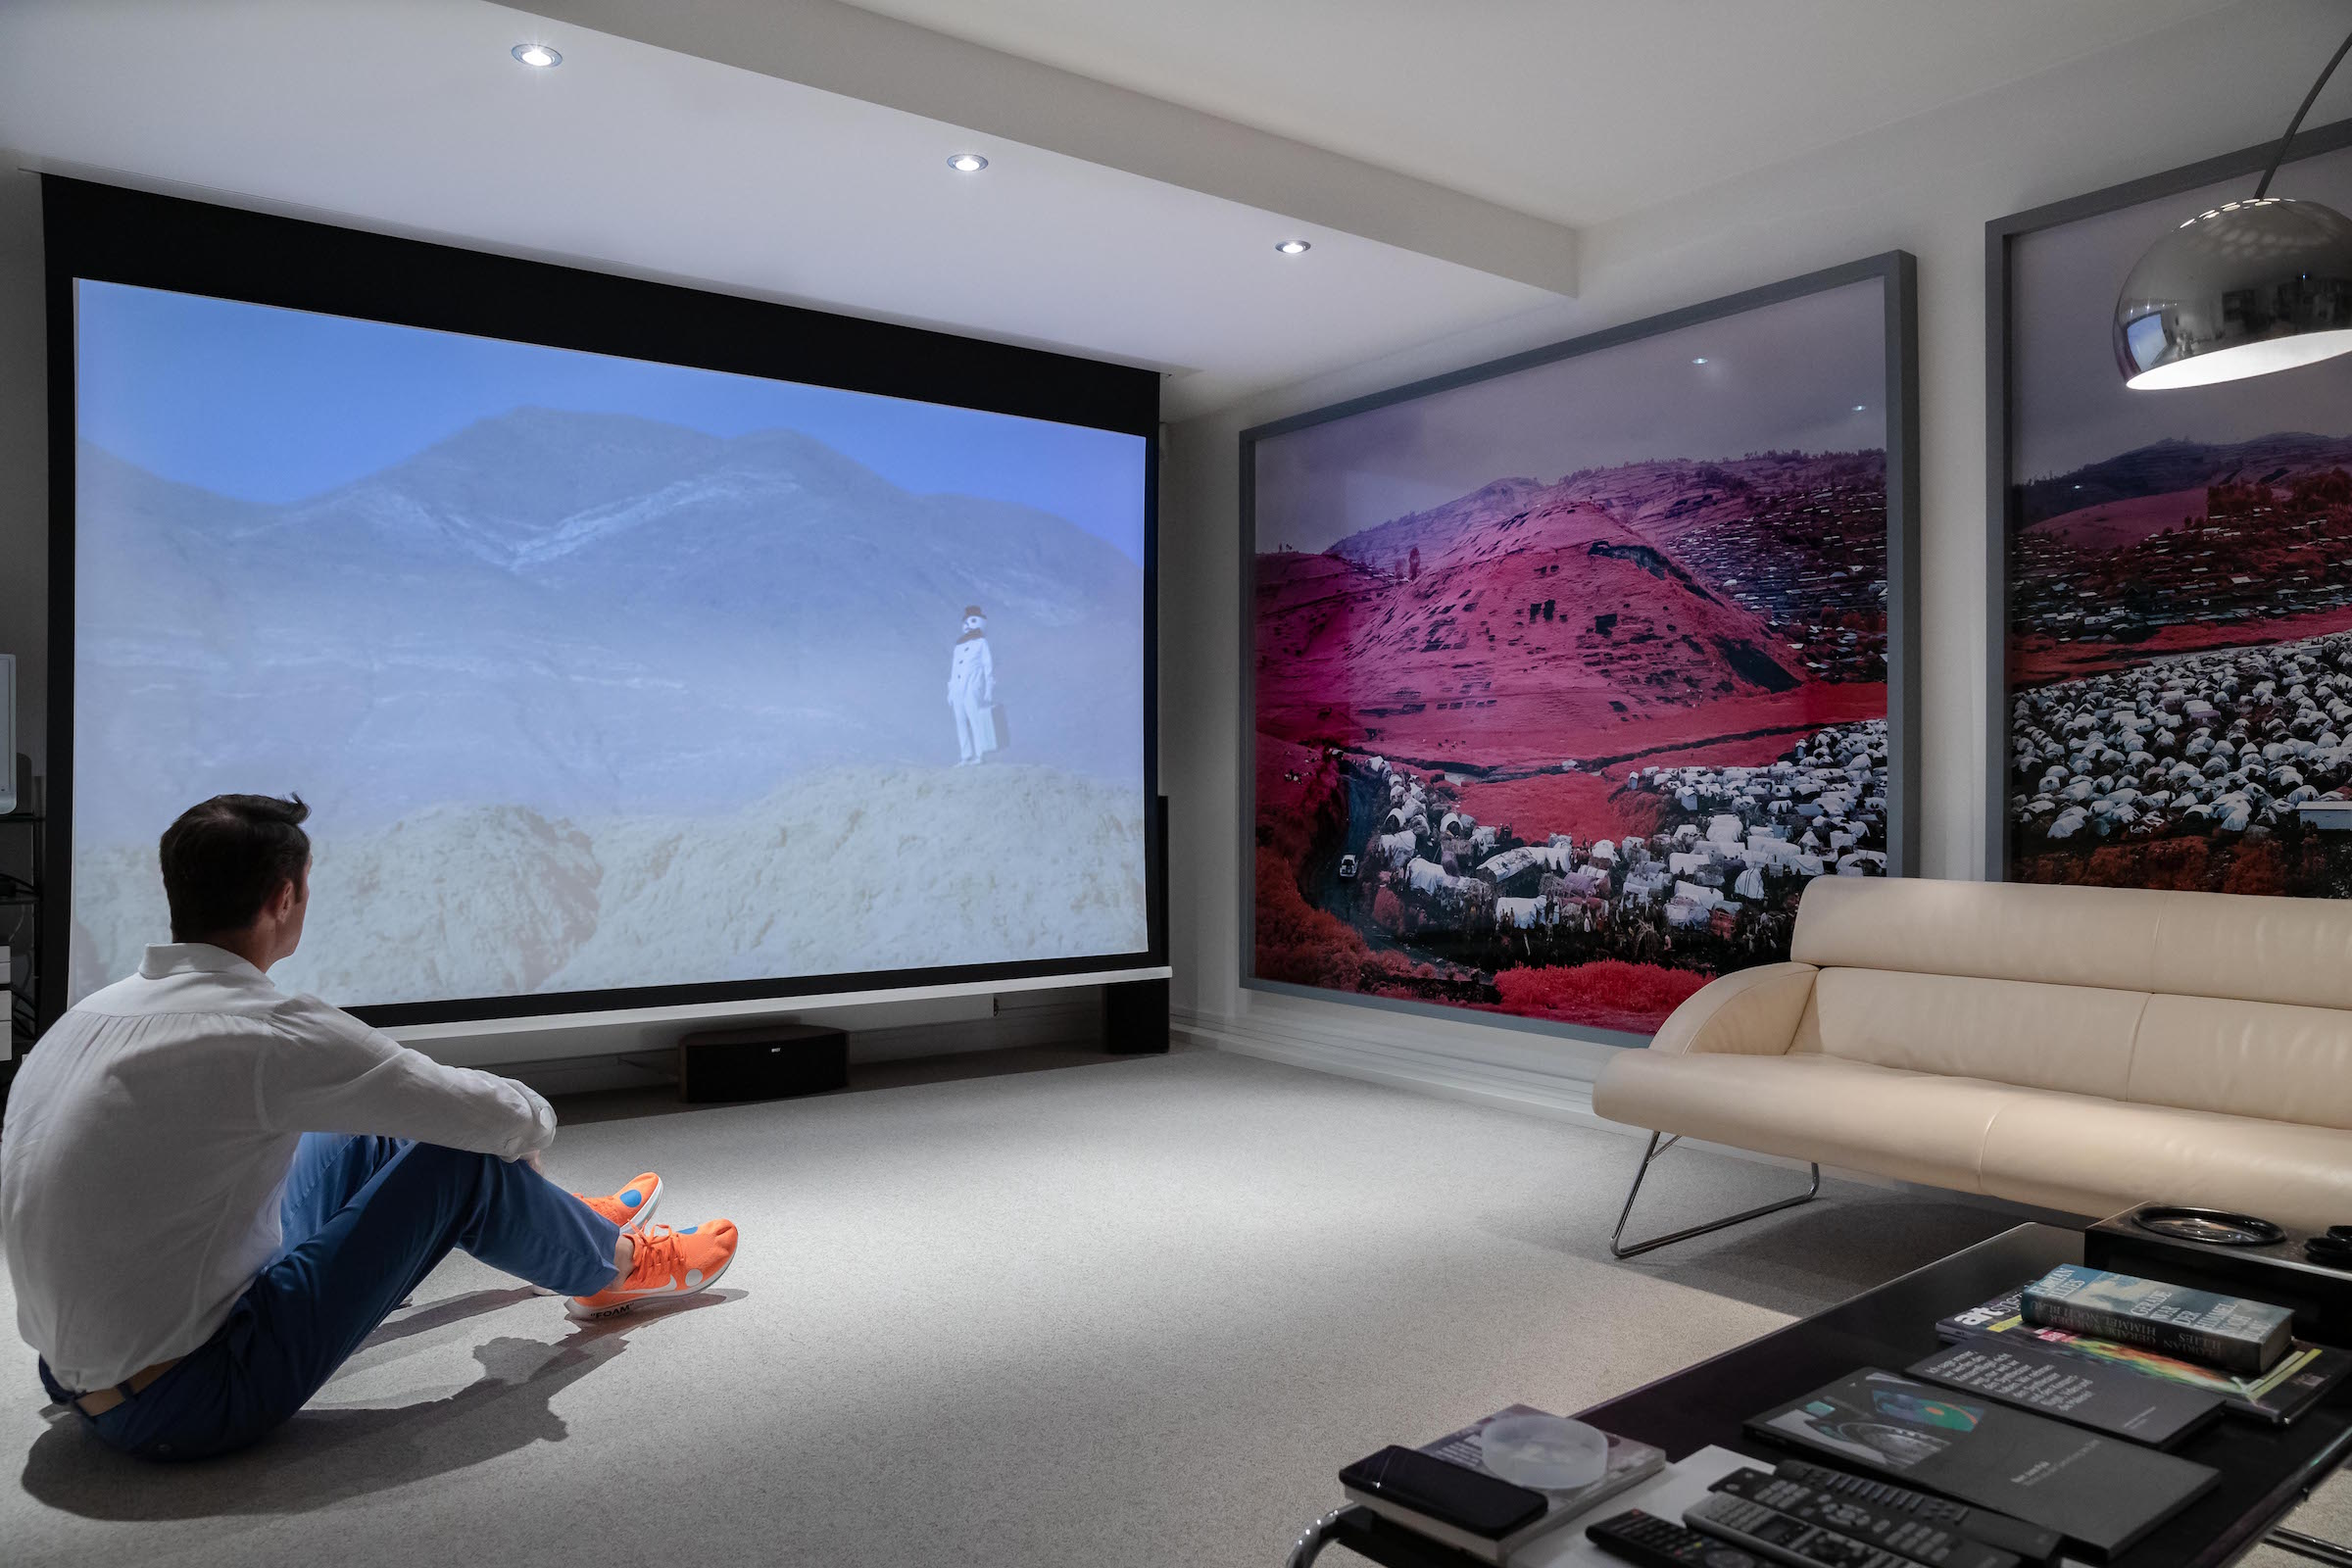 Mario sitting next to video screen, which is playing video of Friedrich Kunath, Untitled, 2009. Photos on the right by Richard Mosse, Thousends are Sailing I and II, 2012. Photo: Jens Braune del Angel. Courtesy of Collection von Kelterborn.